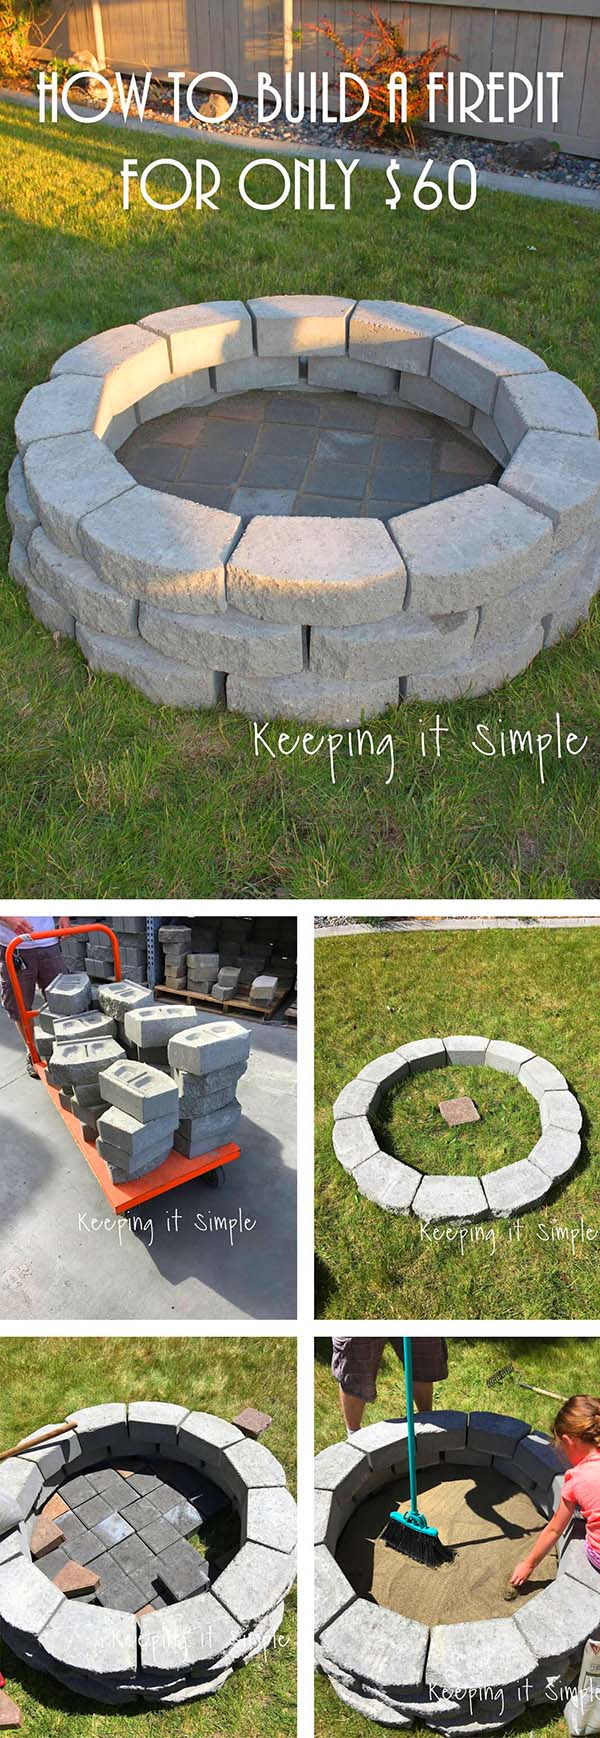 Cheap and Simple Fire Pit Idea Under $60 #firepit #firepitideas #diy #garden #decorhomeideas